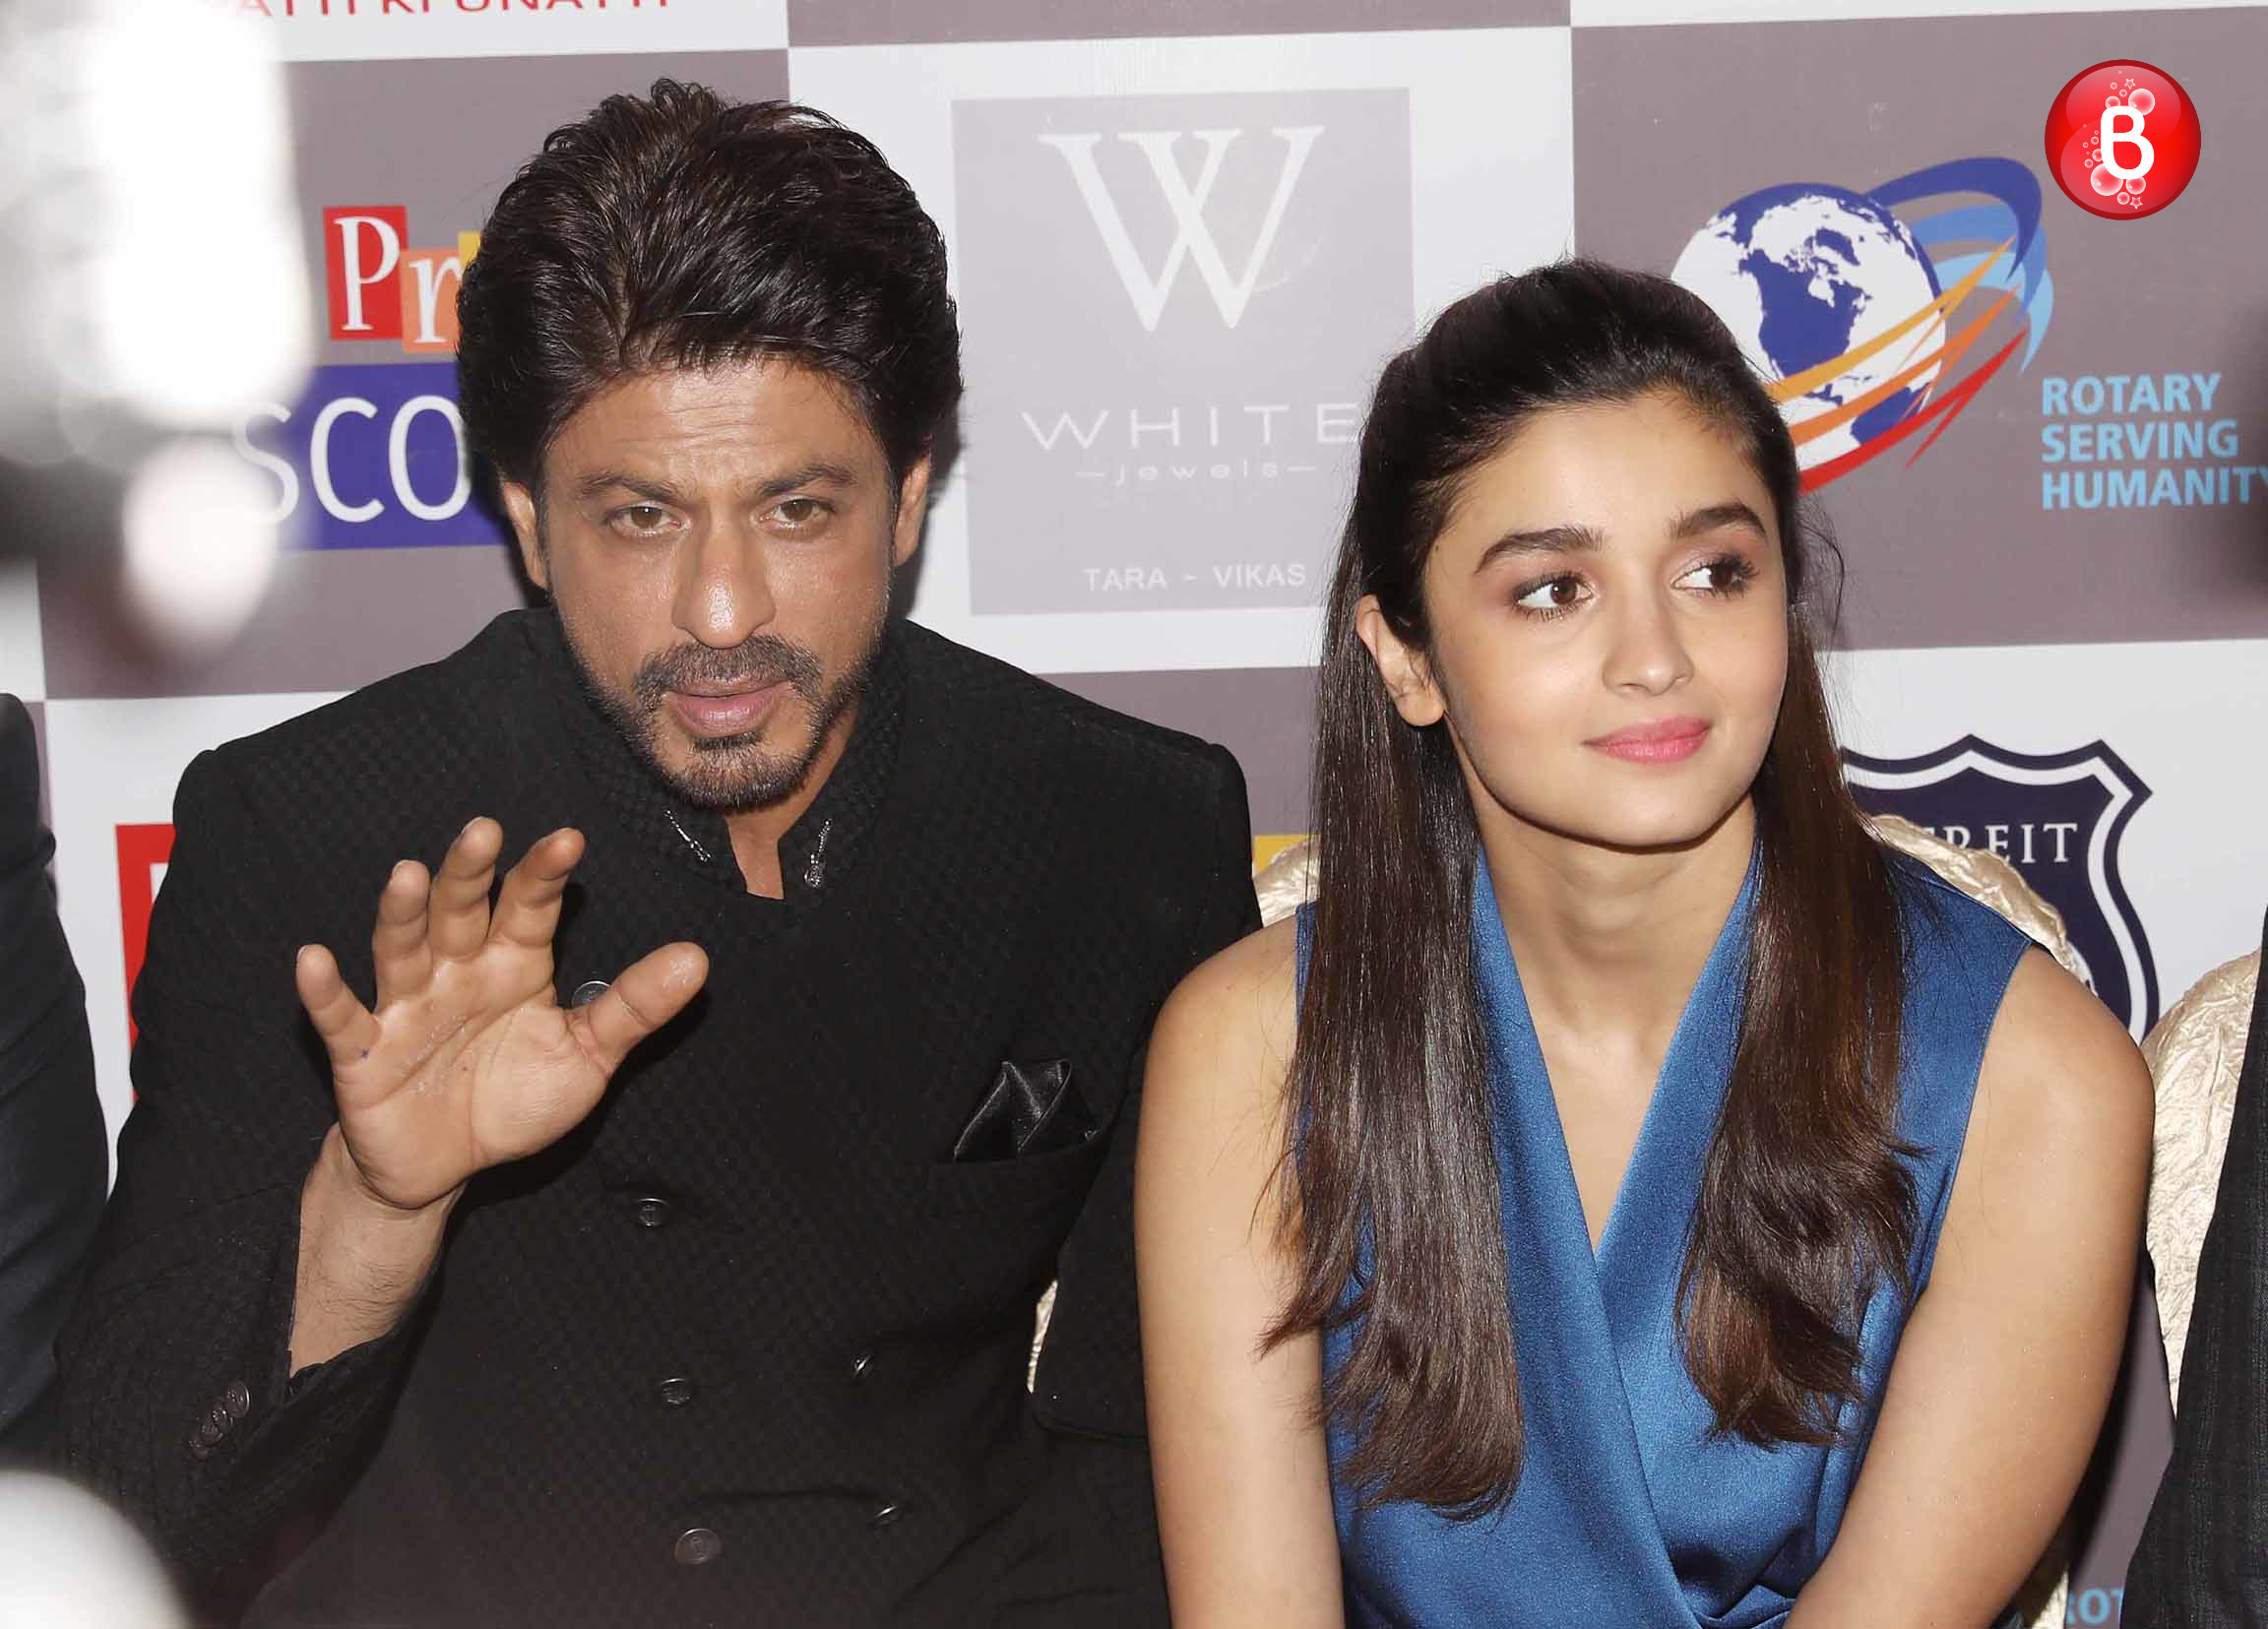 Alia Bhatt and Shah Rukh Khan